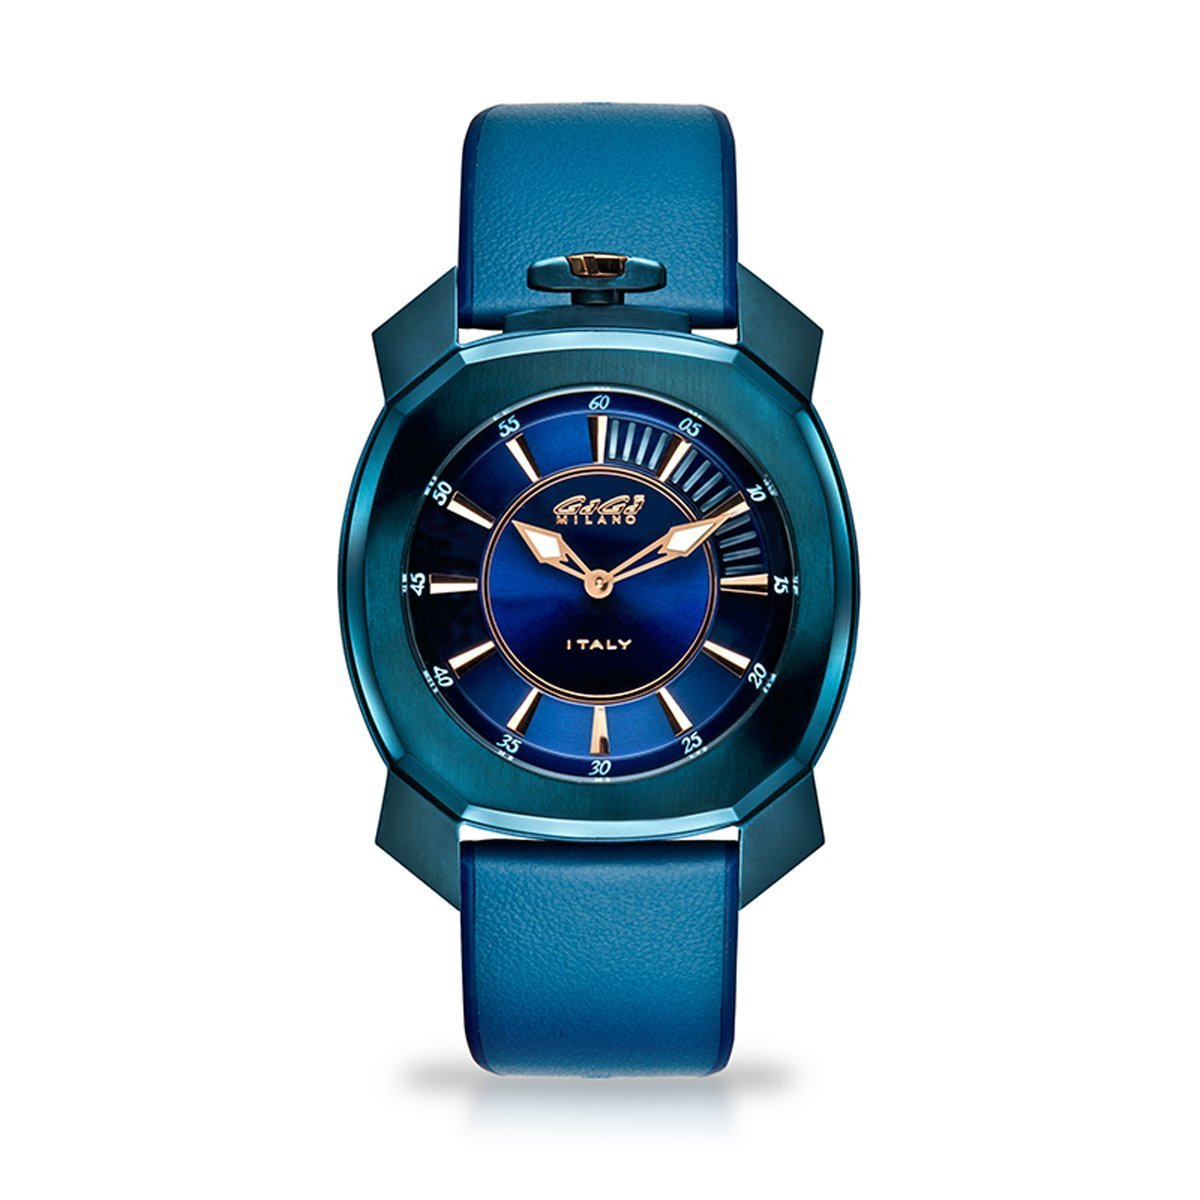 Gaga Milano Frame_One Blue - Watches & Crystals